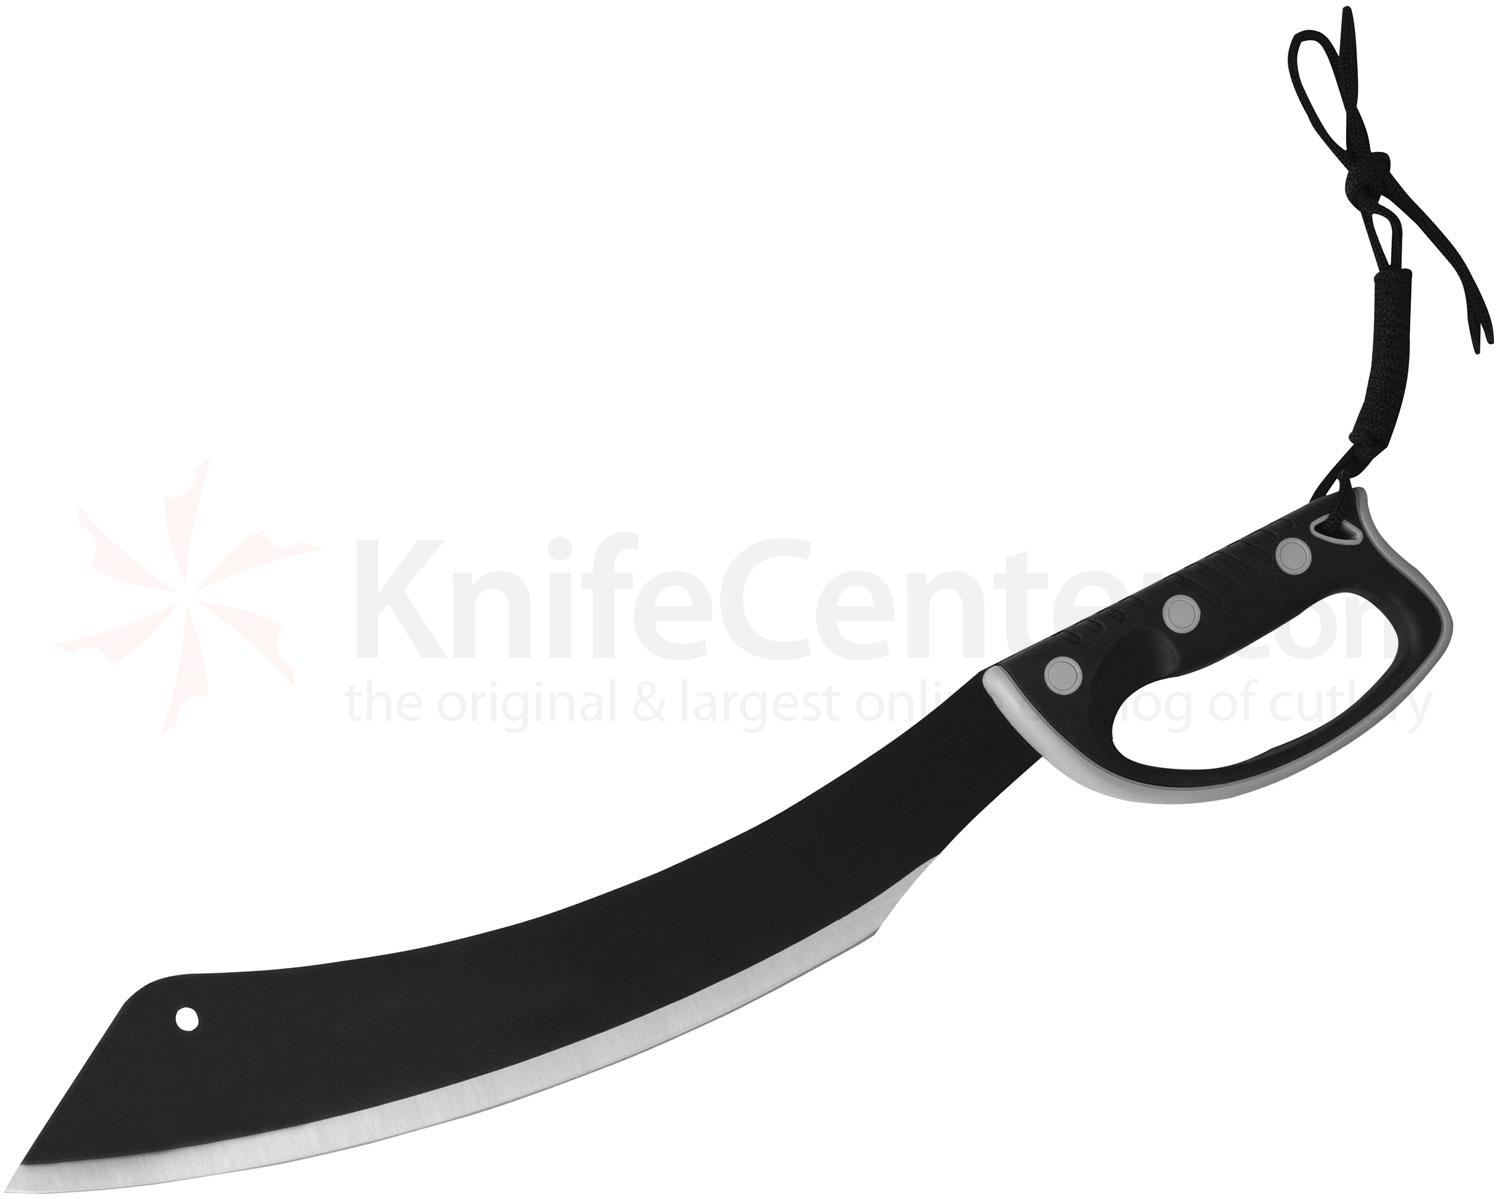 United Cutlery Colombian Panga Machete 15 inch Blade, Grey Handguard, Nylon Sheath